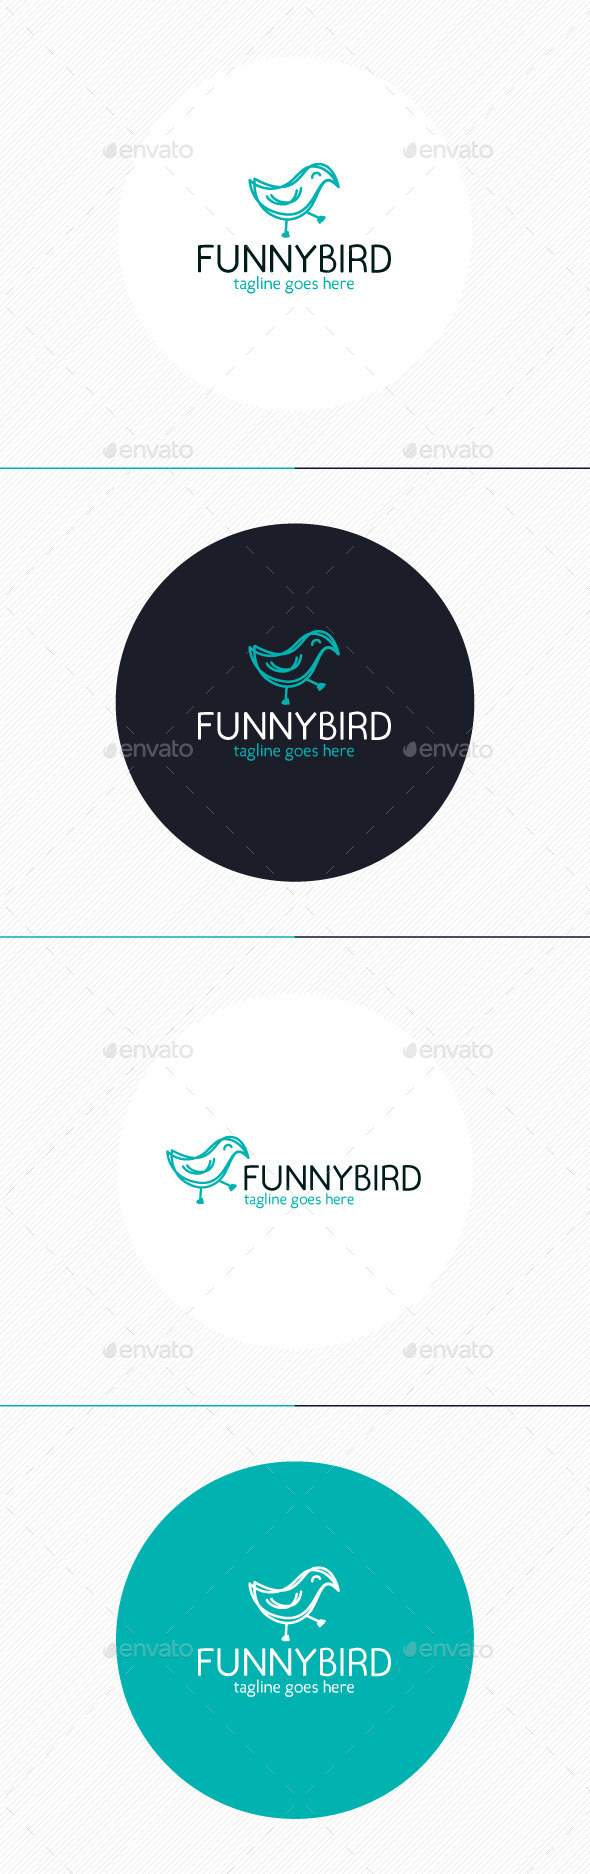 GraphicRiver Funny Bird Logo 9802874